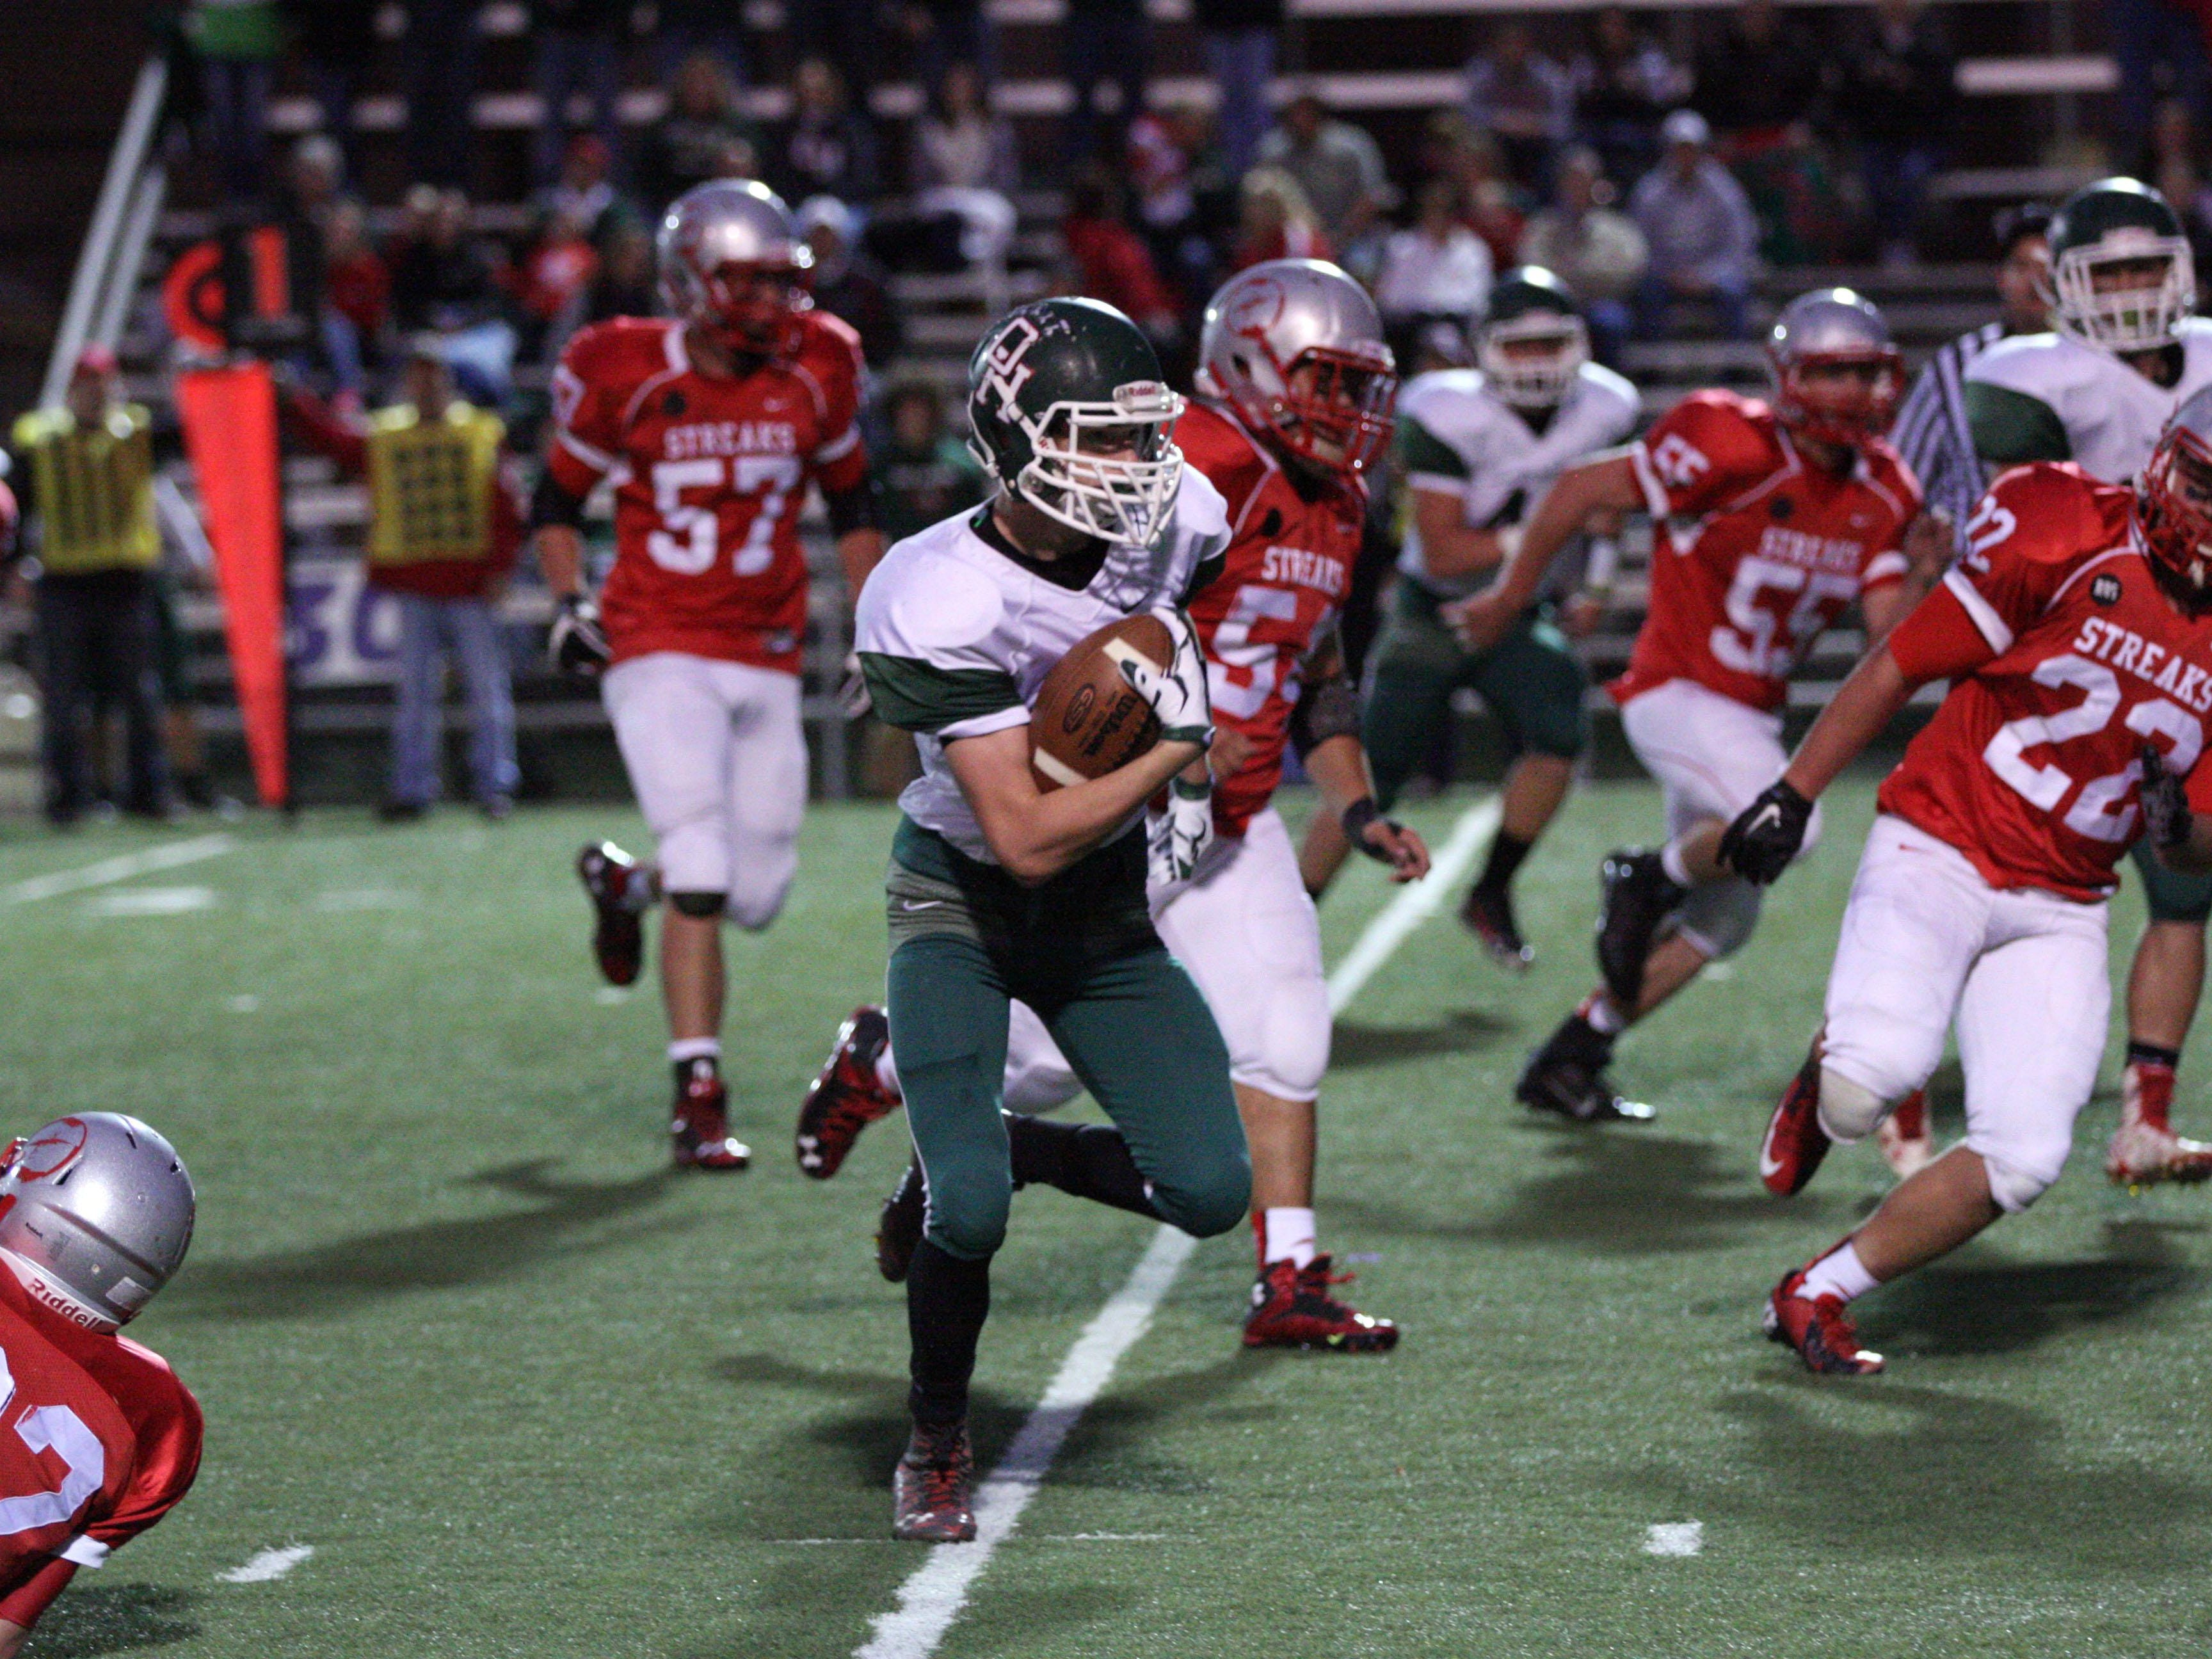 Oak Harbor's Dylan Mansor rushes for yardage against Fremont St.Joesph Central Catholic's defense. Photo by Doug Hise.